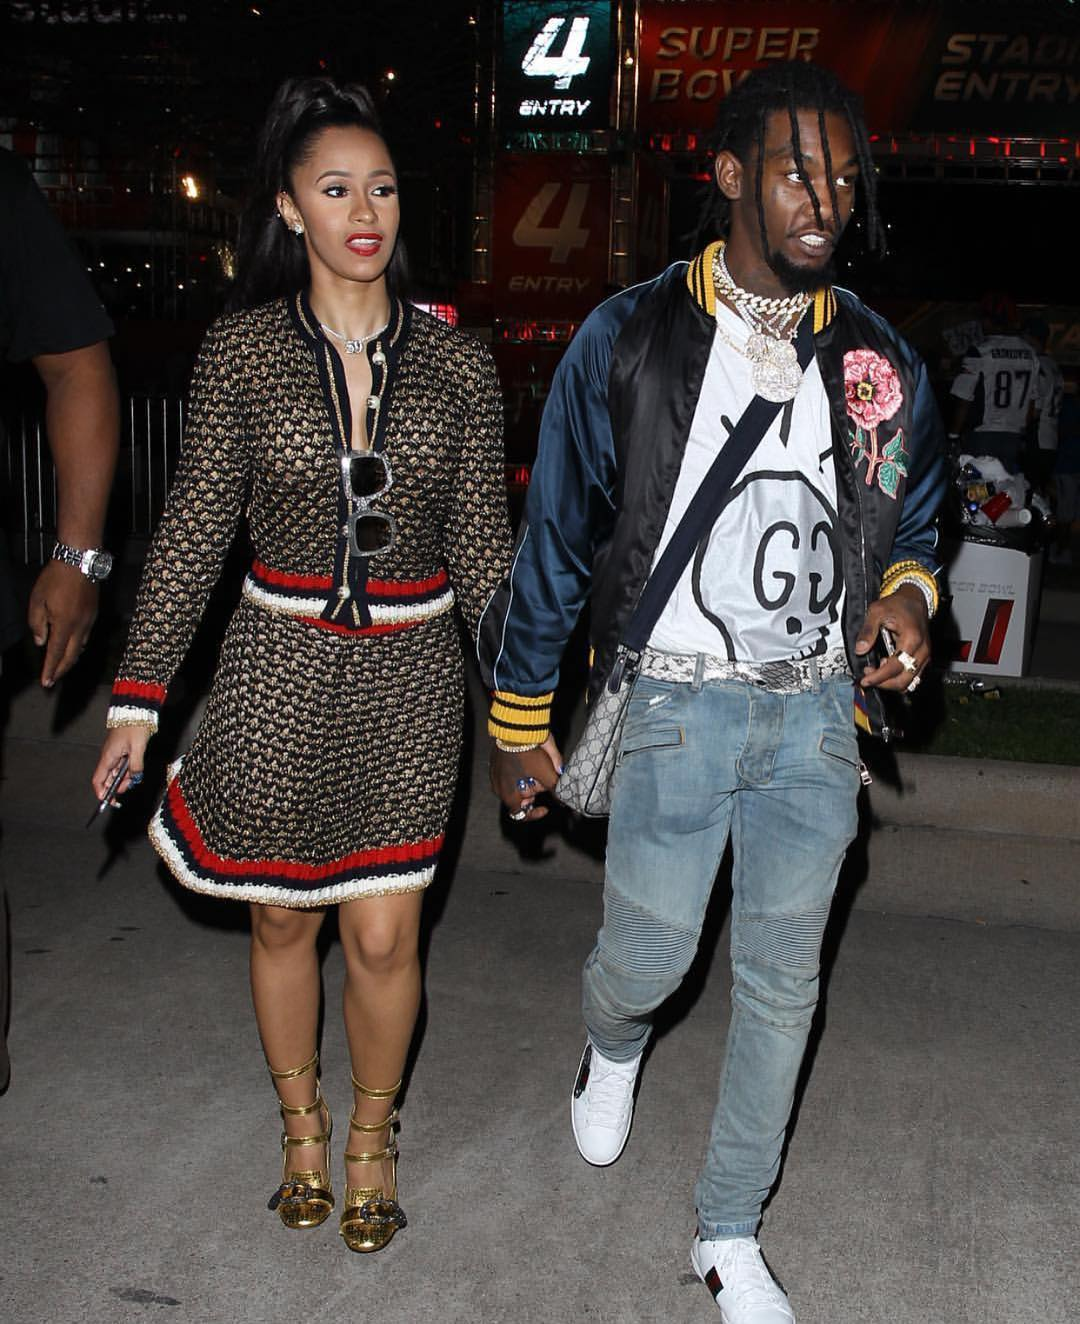 Who Is Cardi B Dating: Is Offset From The Group Migos Dating Cardi B From Love